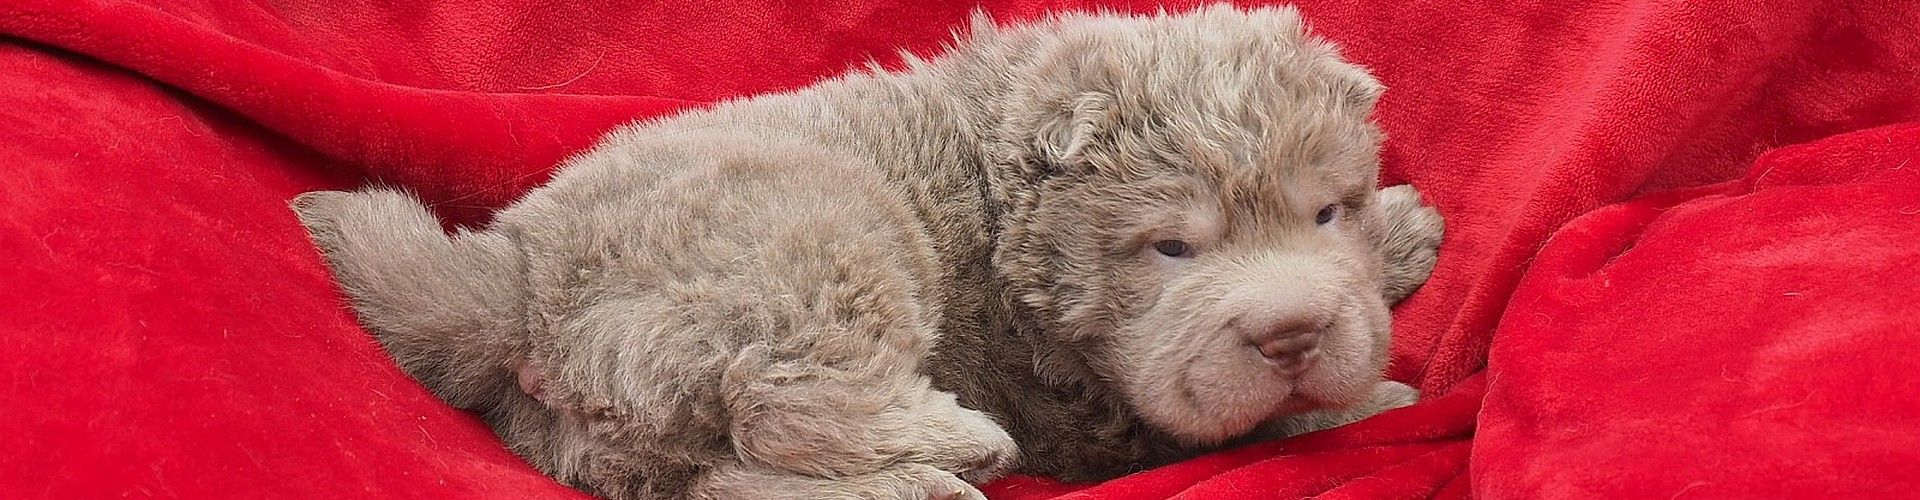 Savdeeta Available Shar Pei Puppies Shar Pei Puppies Fur Babies